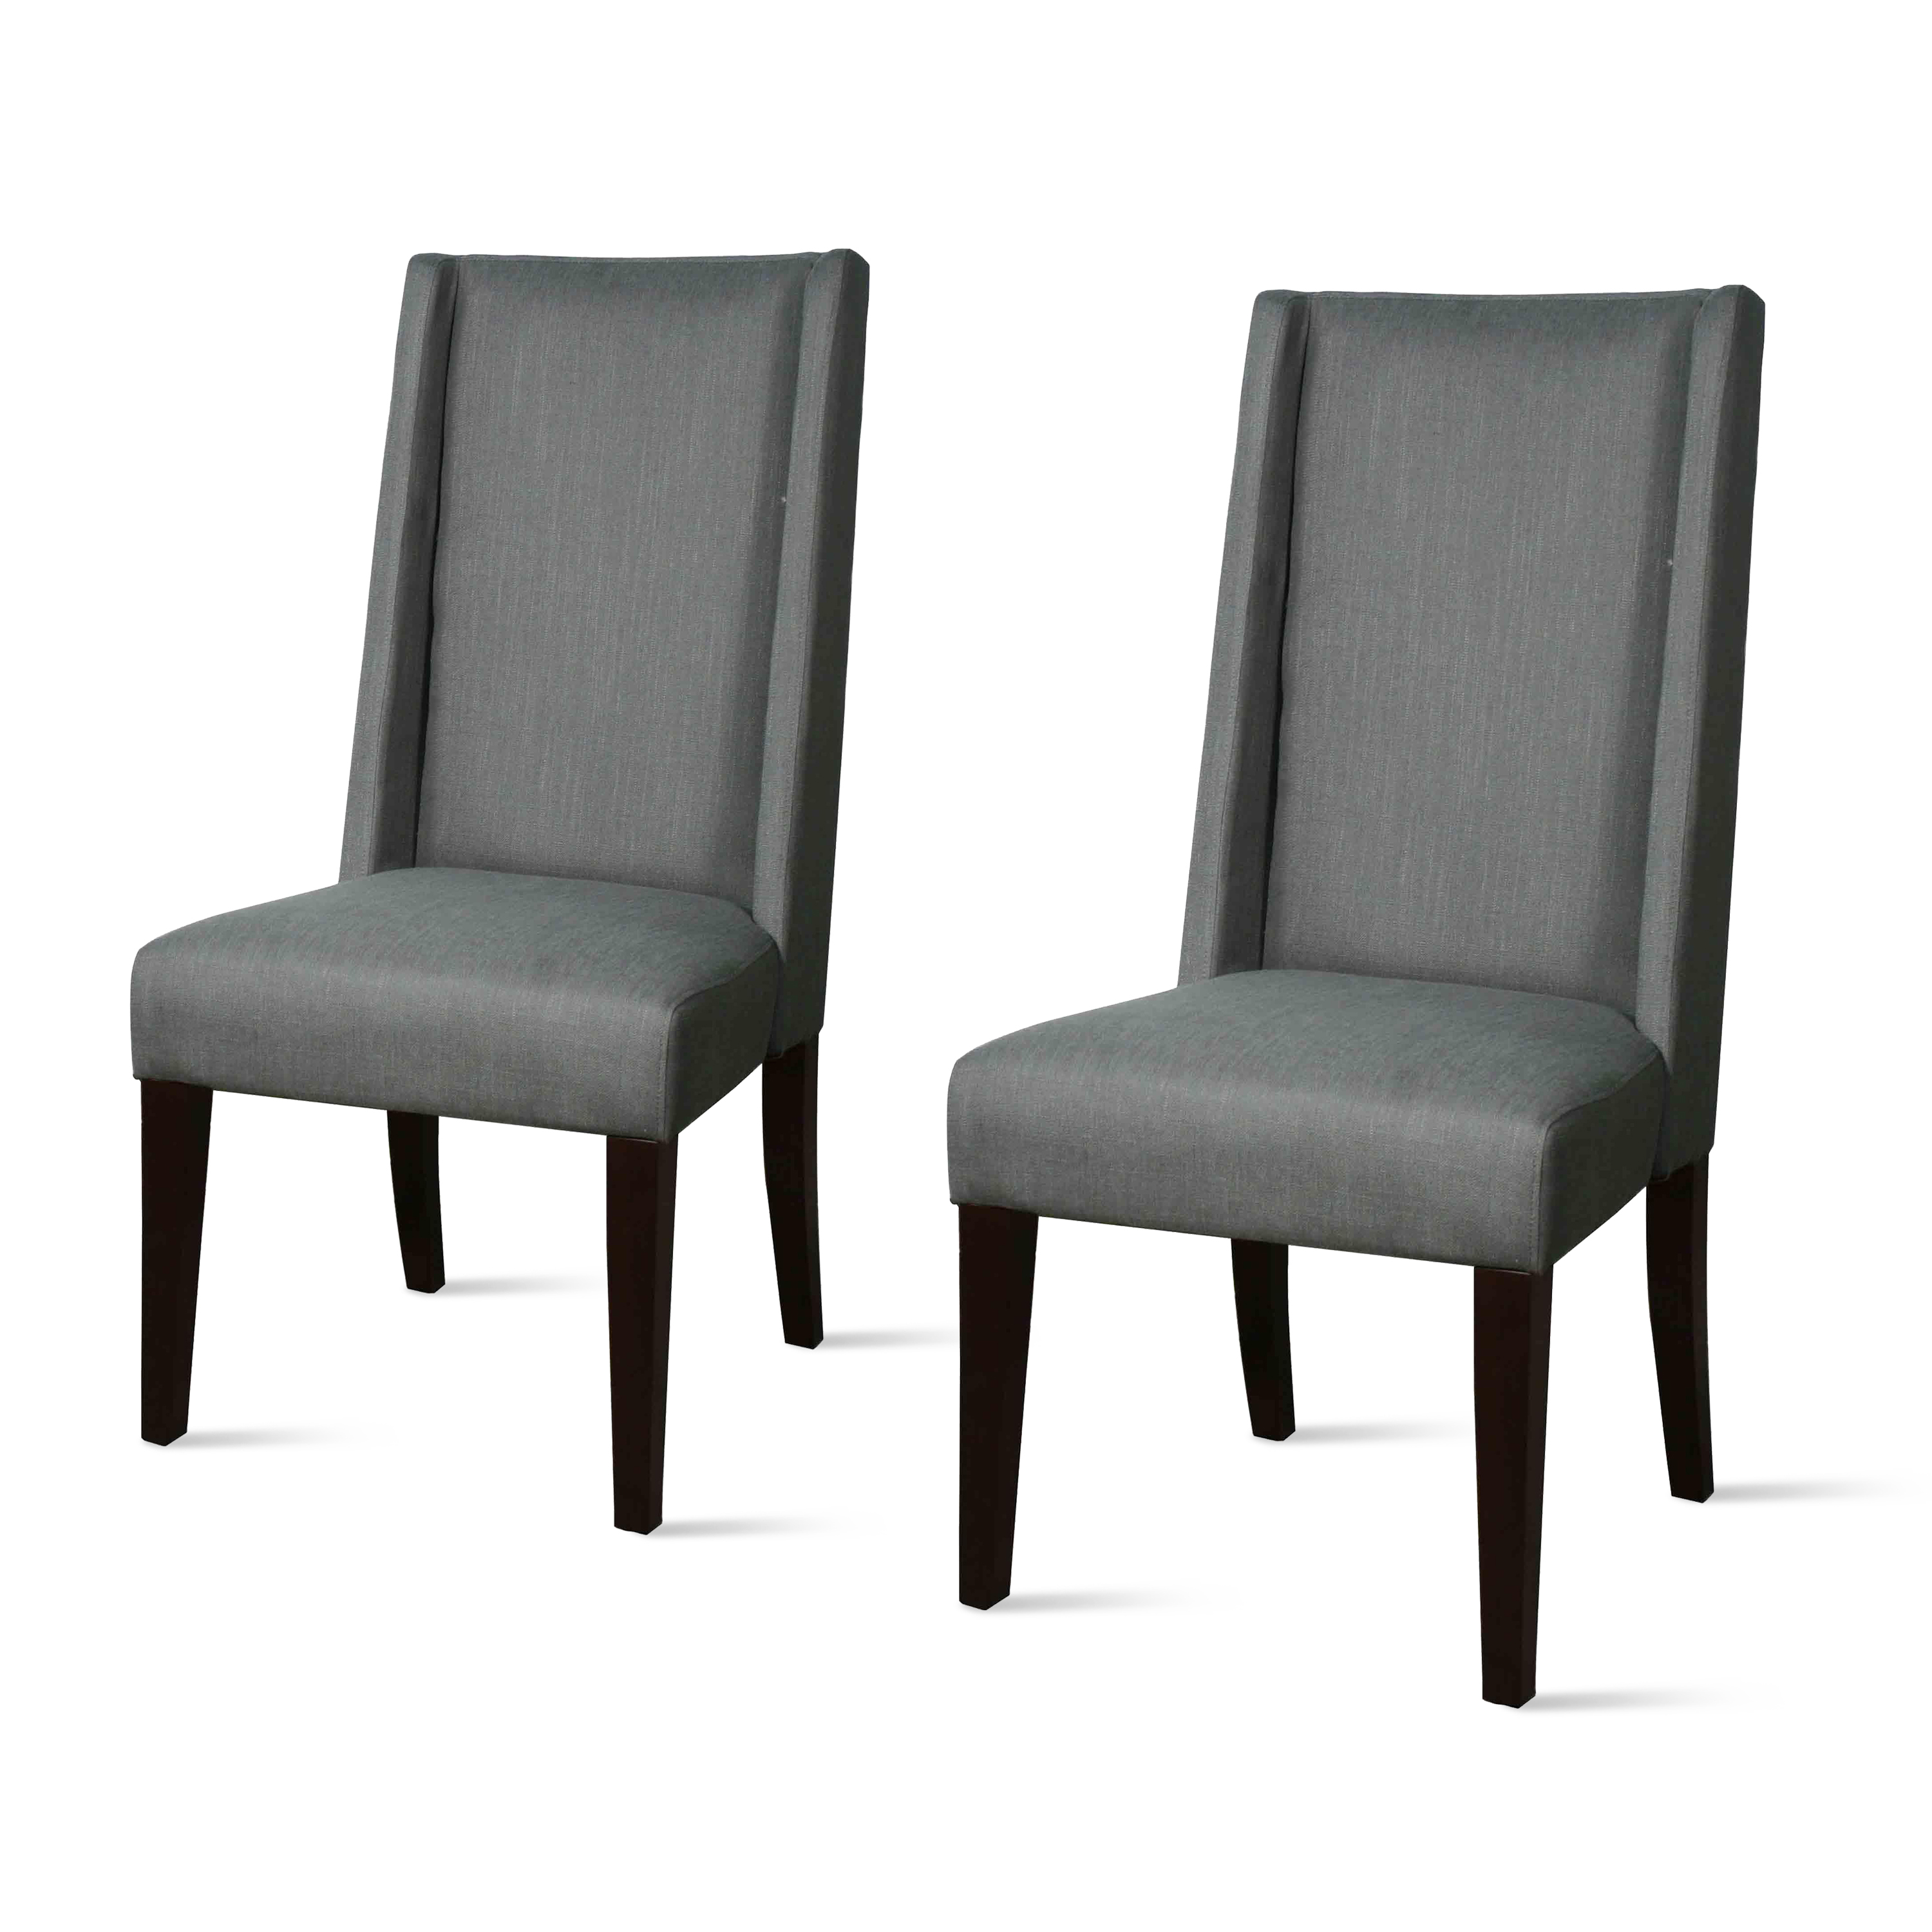 Charmant Lucas Tall Back Dining Chair (Set Of 2), Multiple Colors